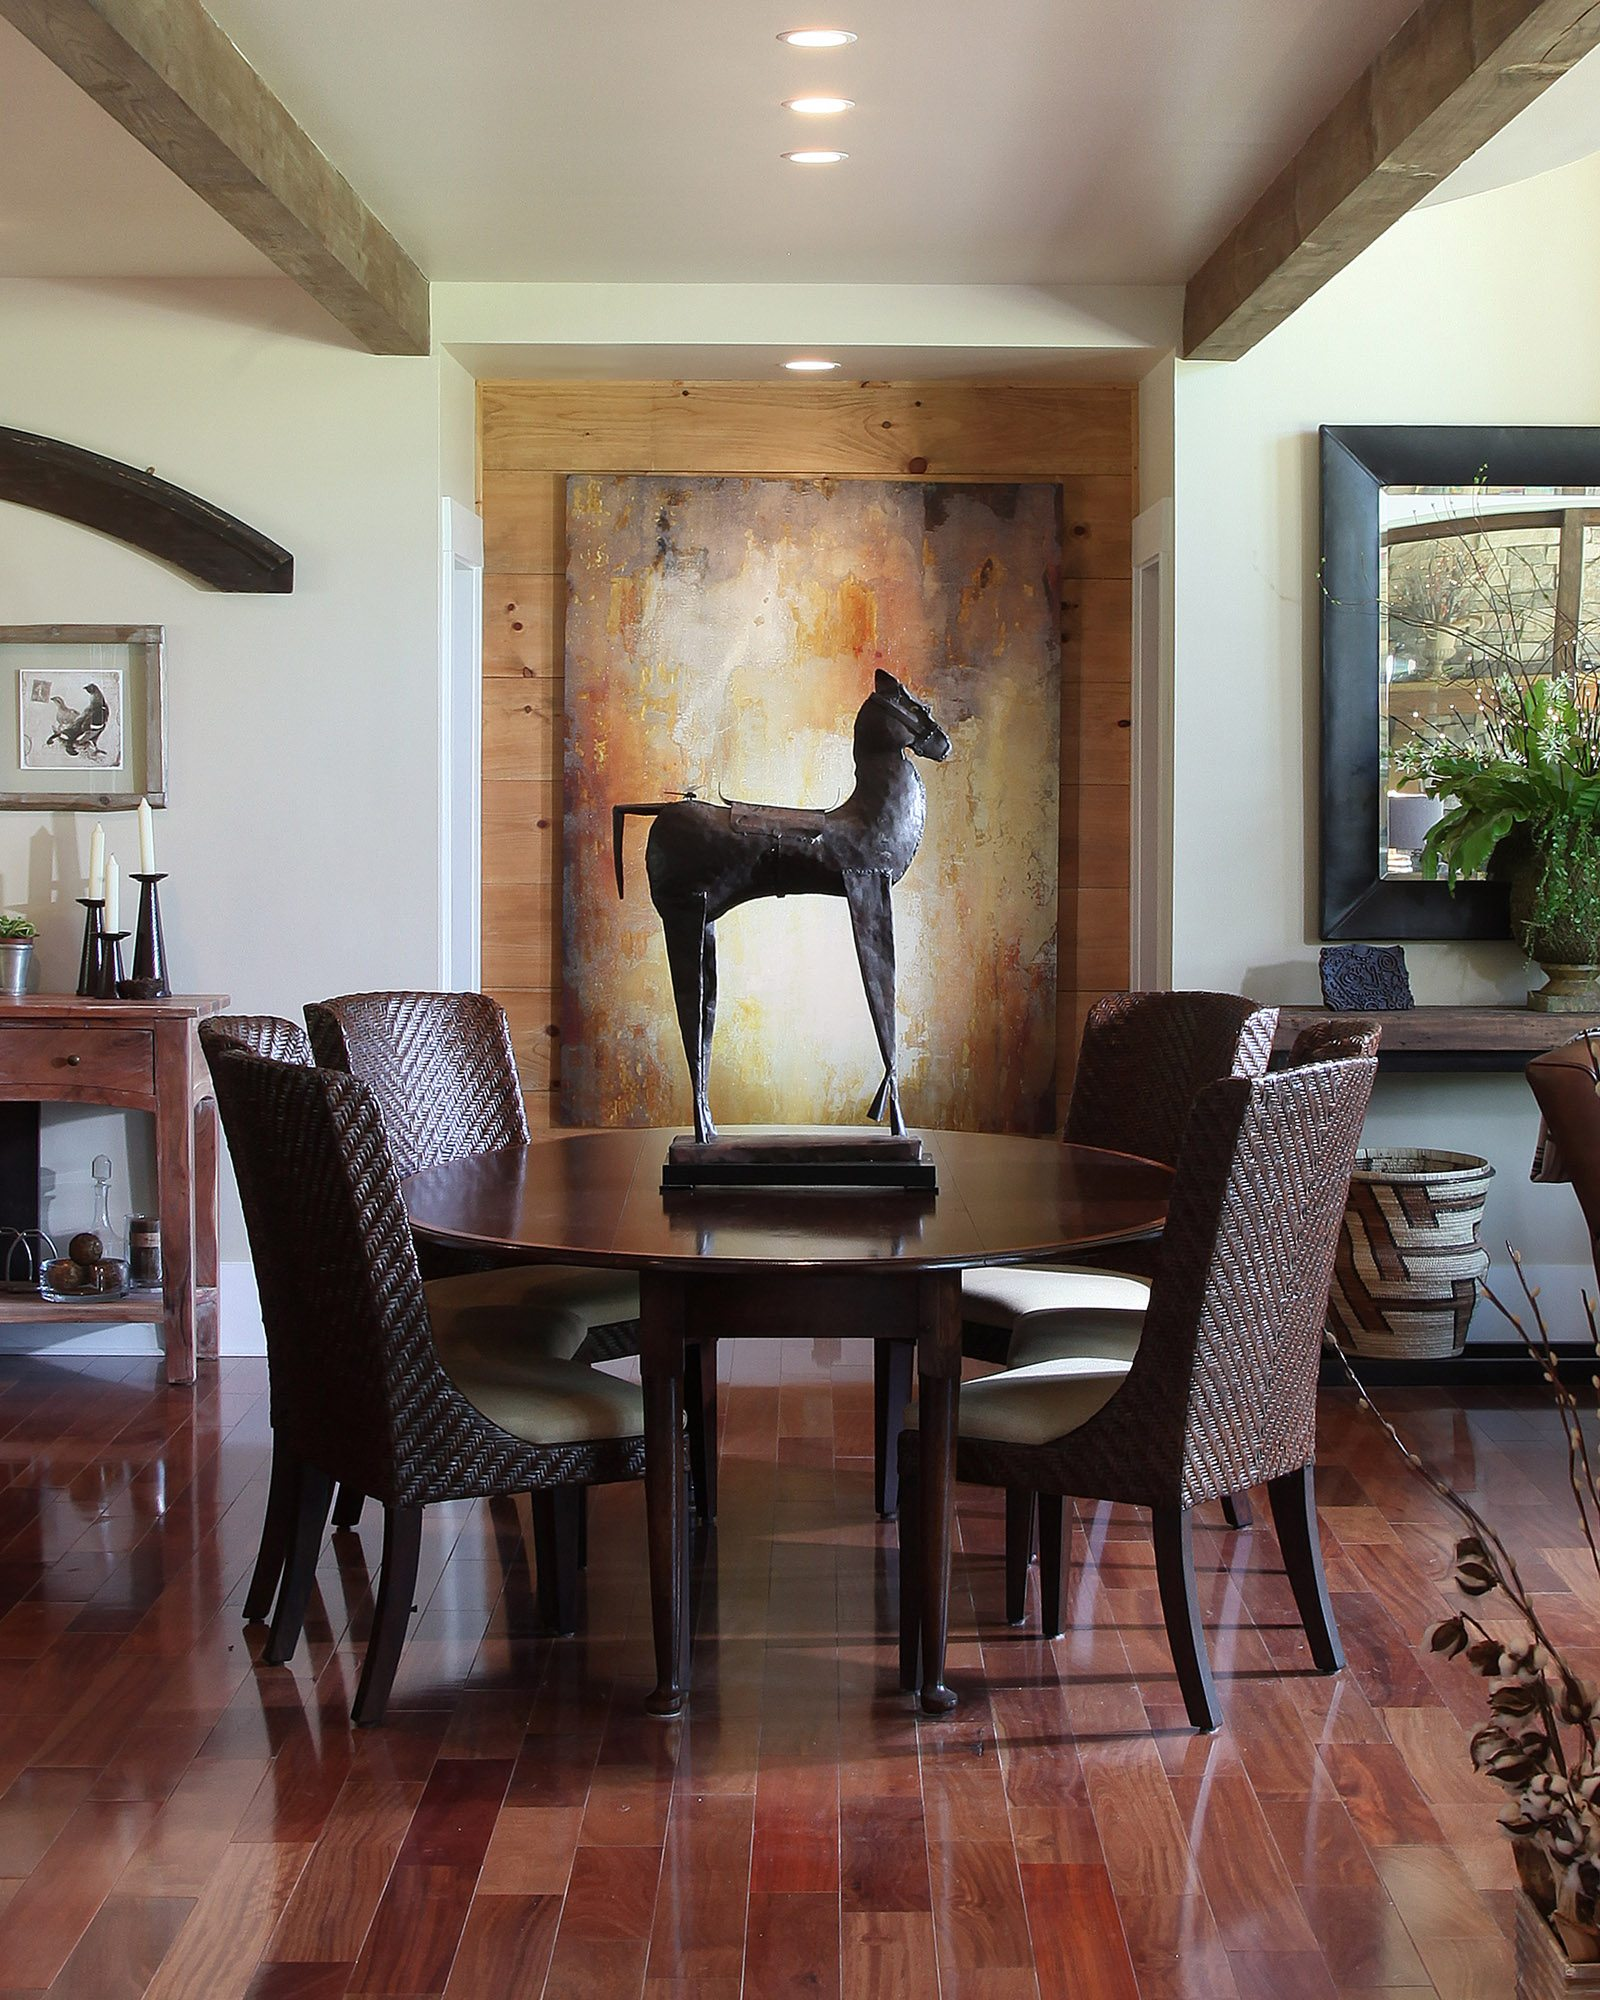 ower ceiling in the dining area helps define the space